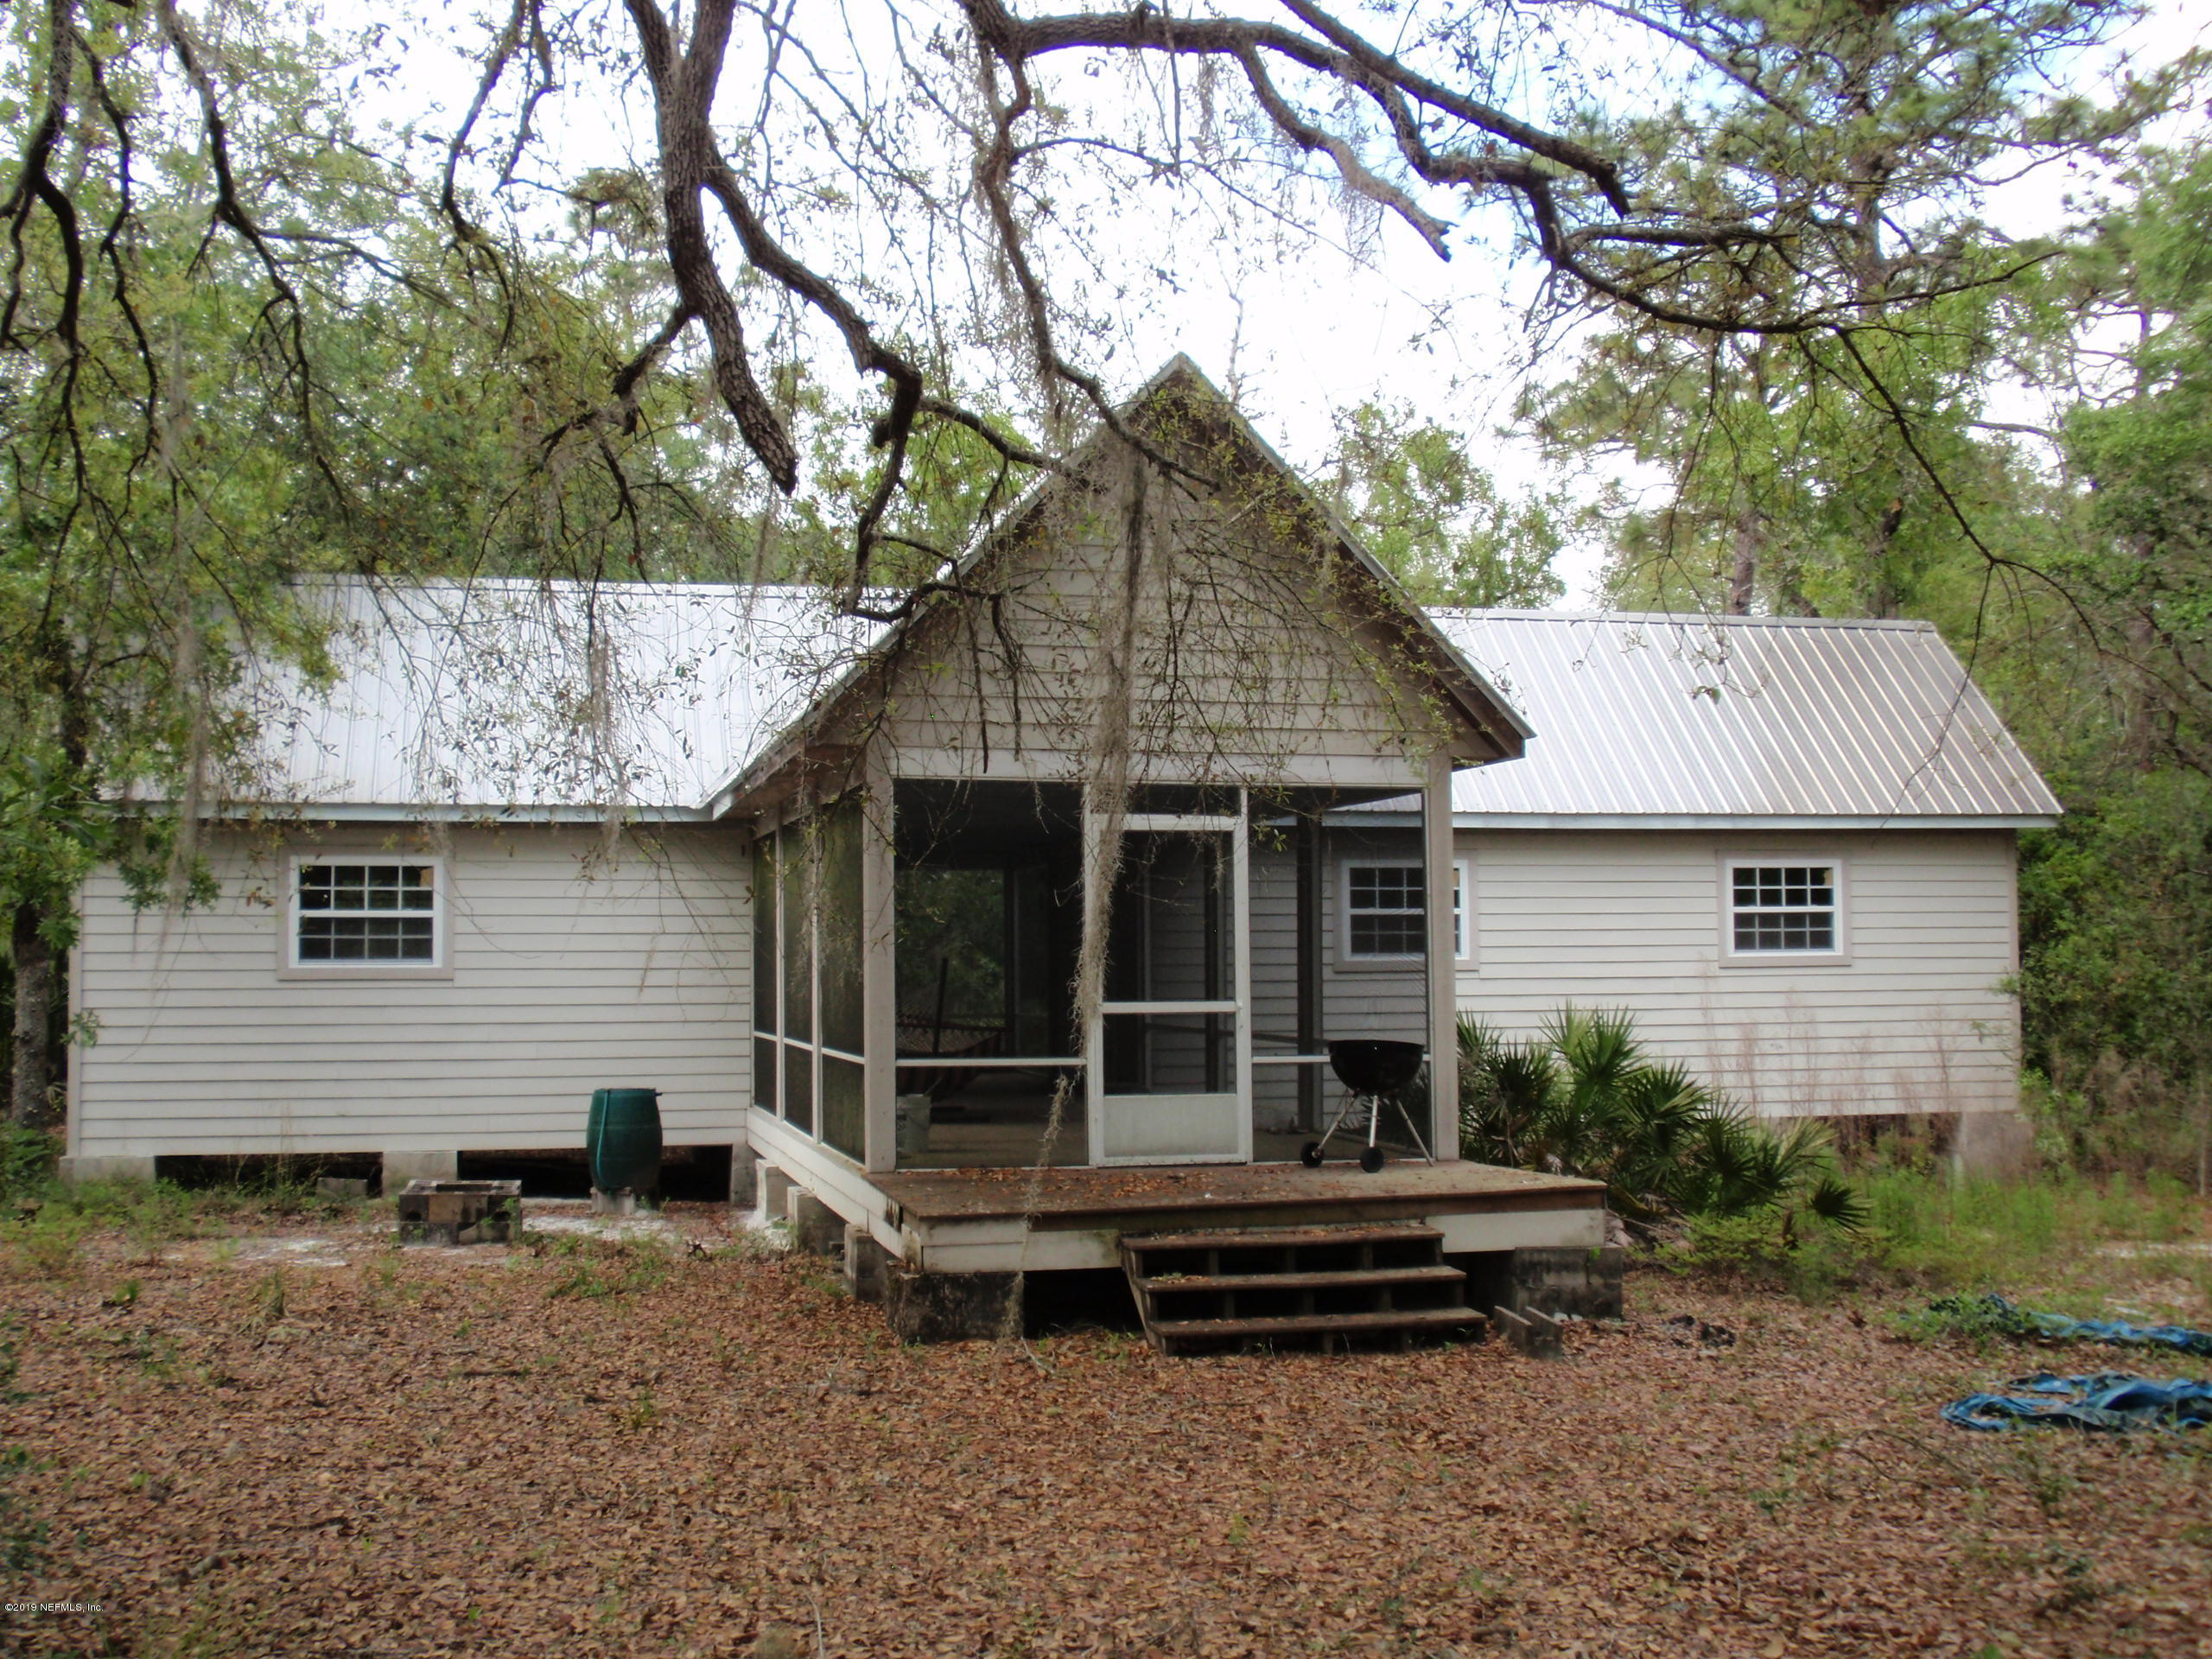 375 BUCK SPRINGS, PALATKA, FLORIDA 32177, ,Vacant land,For sale,BUCK SPRINGS,995997